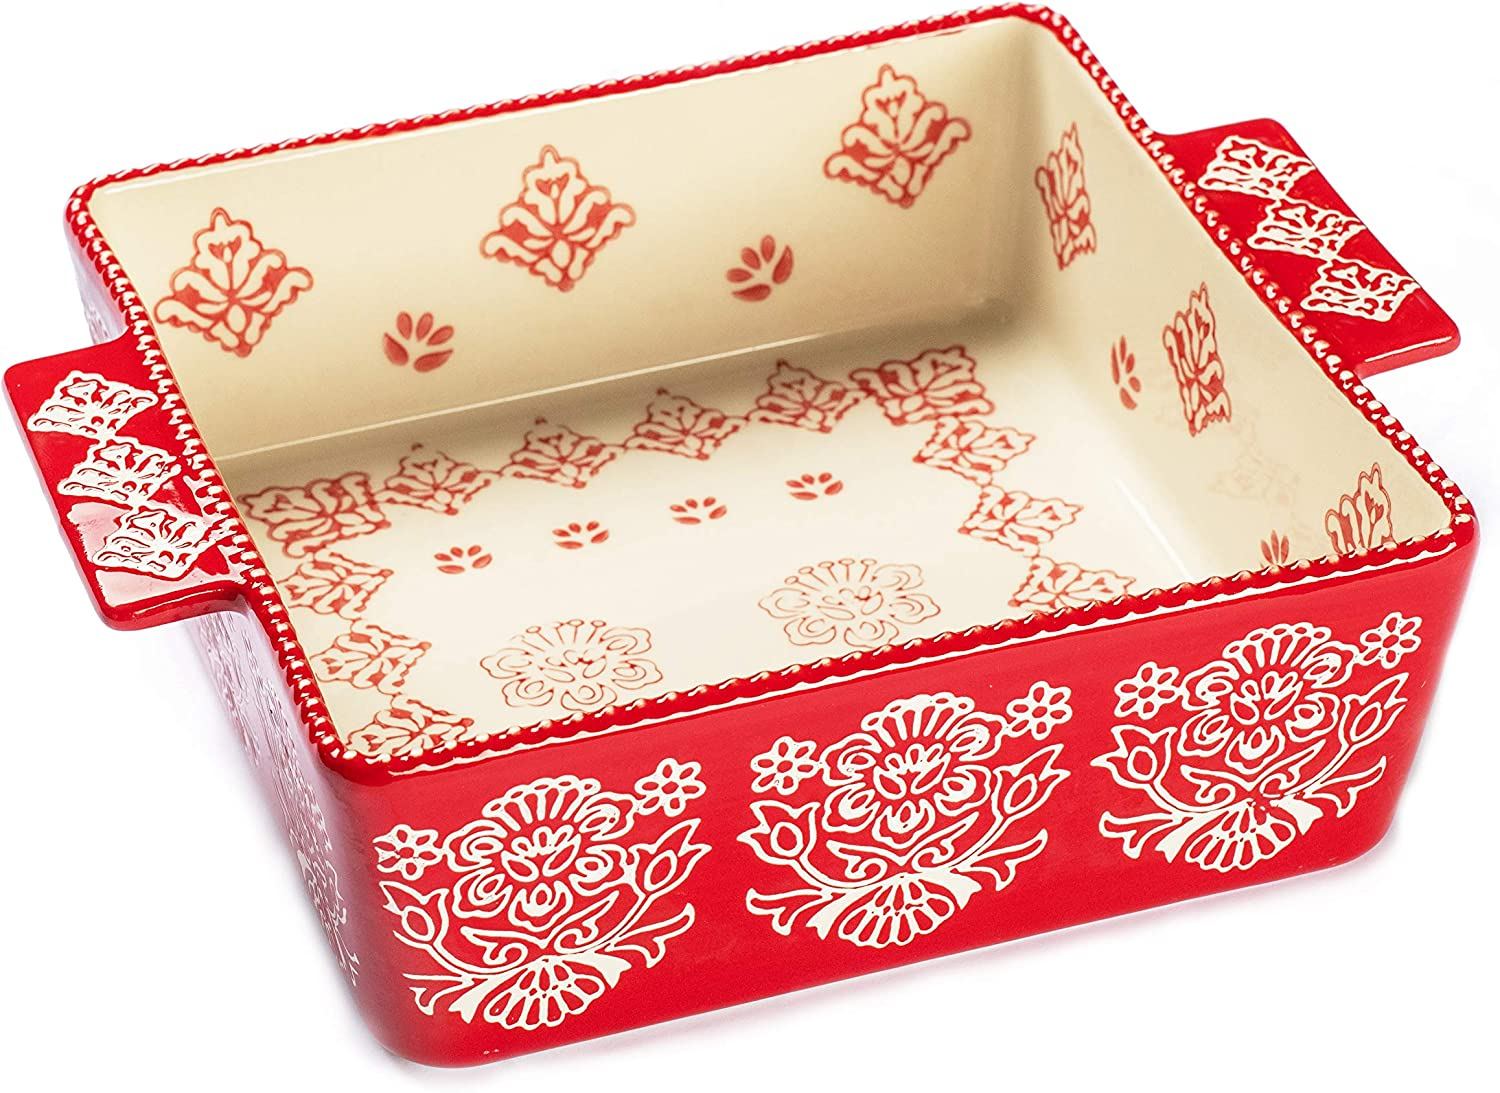 "Oven to Table Square Casserole Dish - 100% Stoneware Ceramic Baking Dishes for Cooking & Serving, 2.3 Quart Lasagna Pan Bakeware is Dishwasher & Microwave Safe - 7.6"" x 7.6"" Cookware Pans"